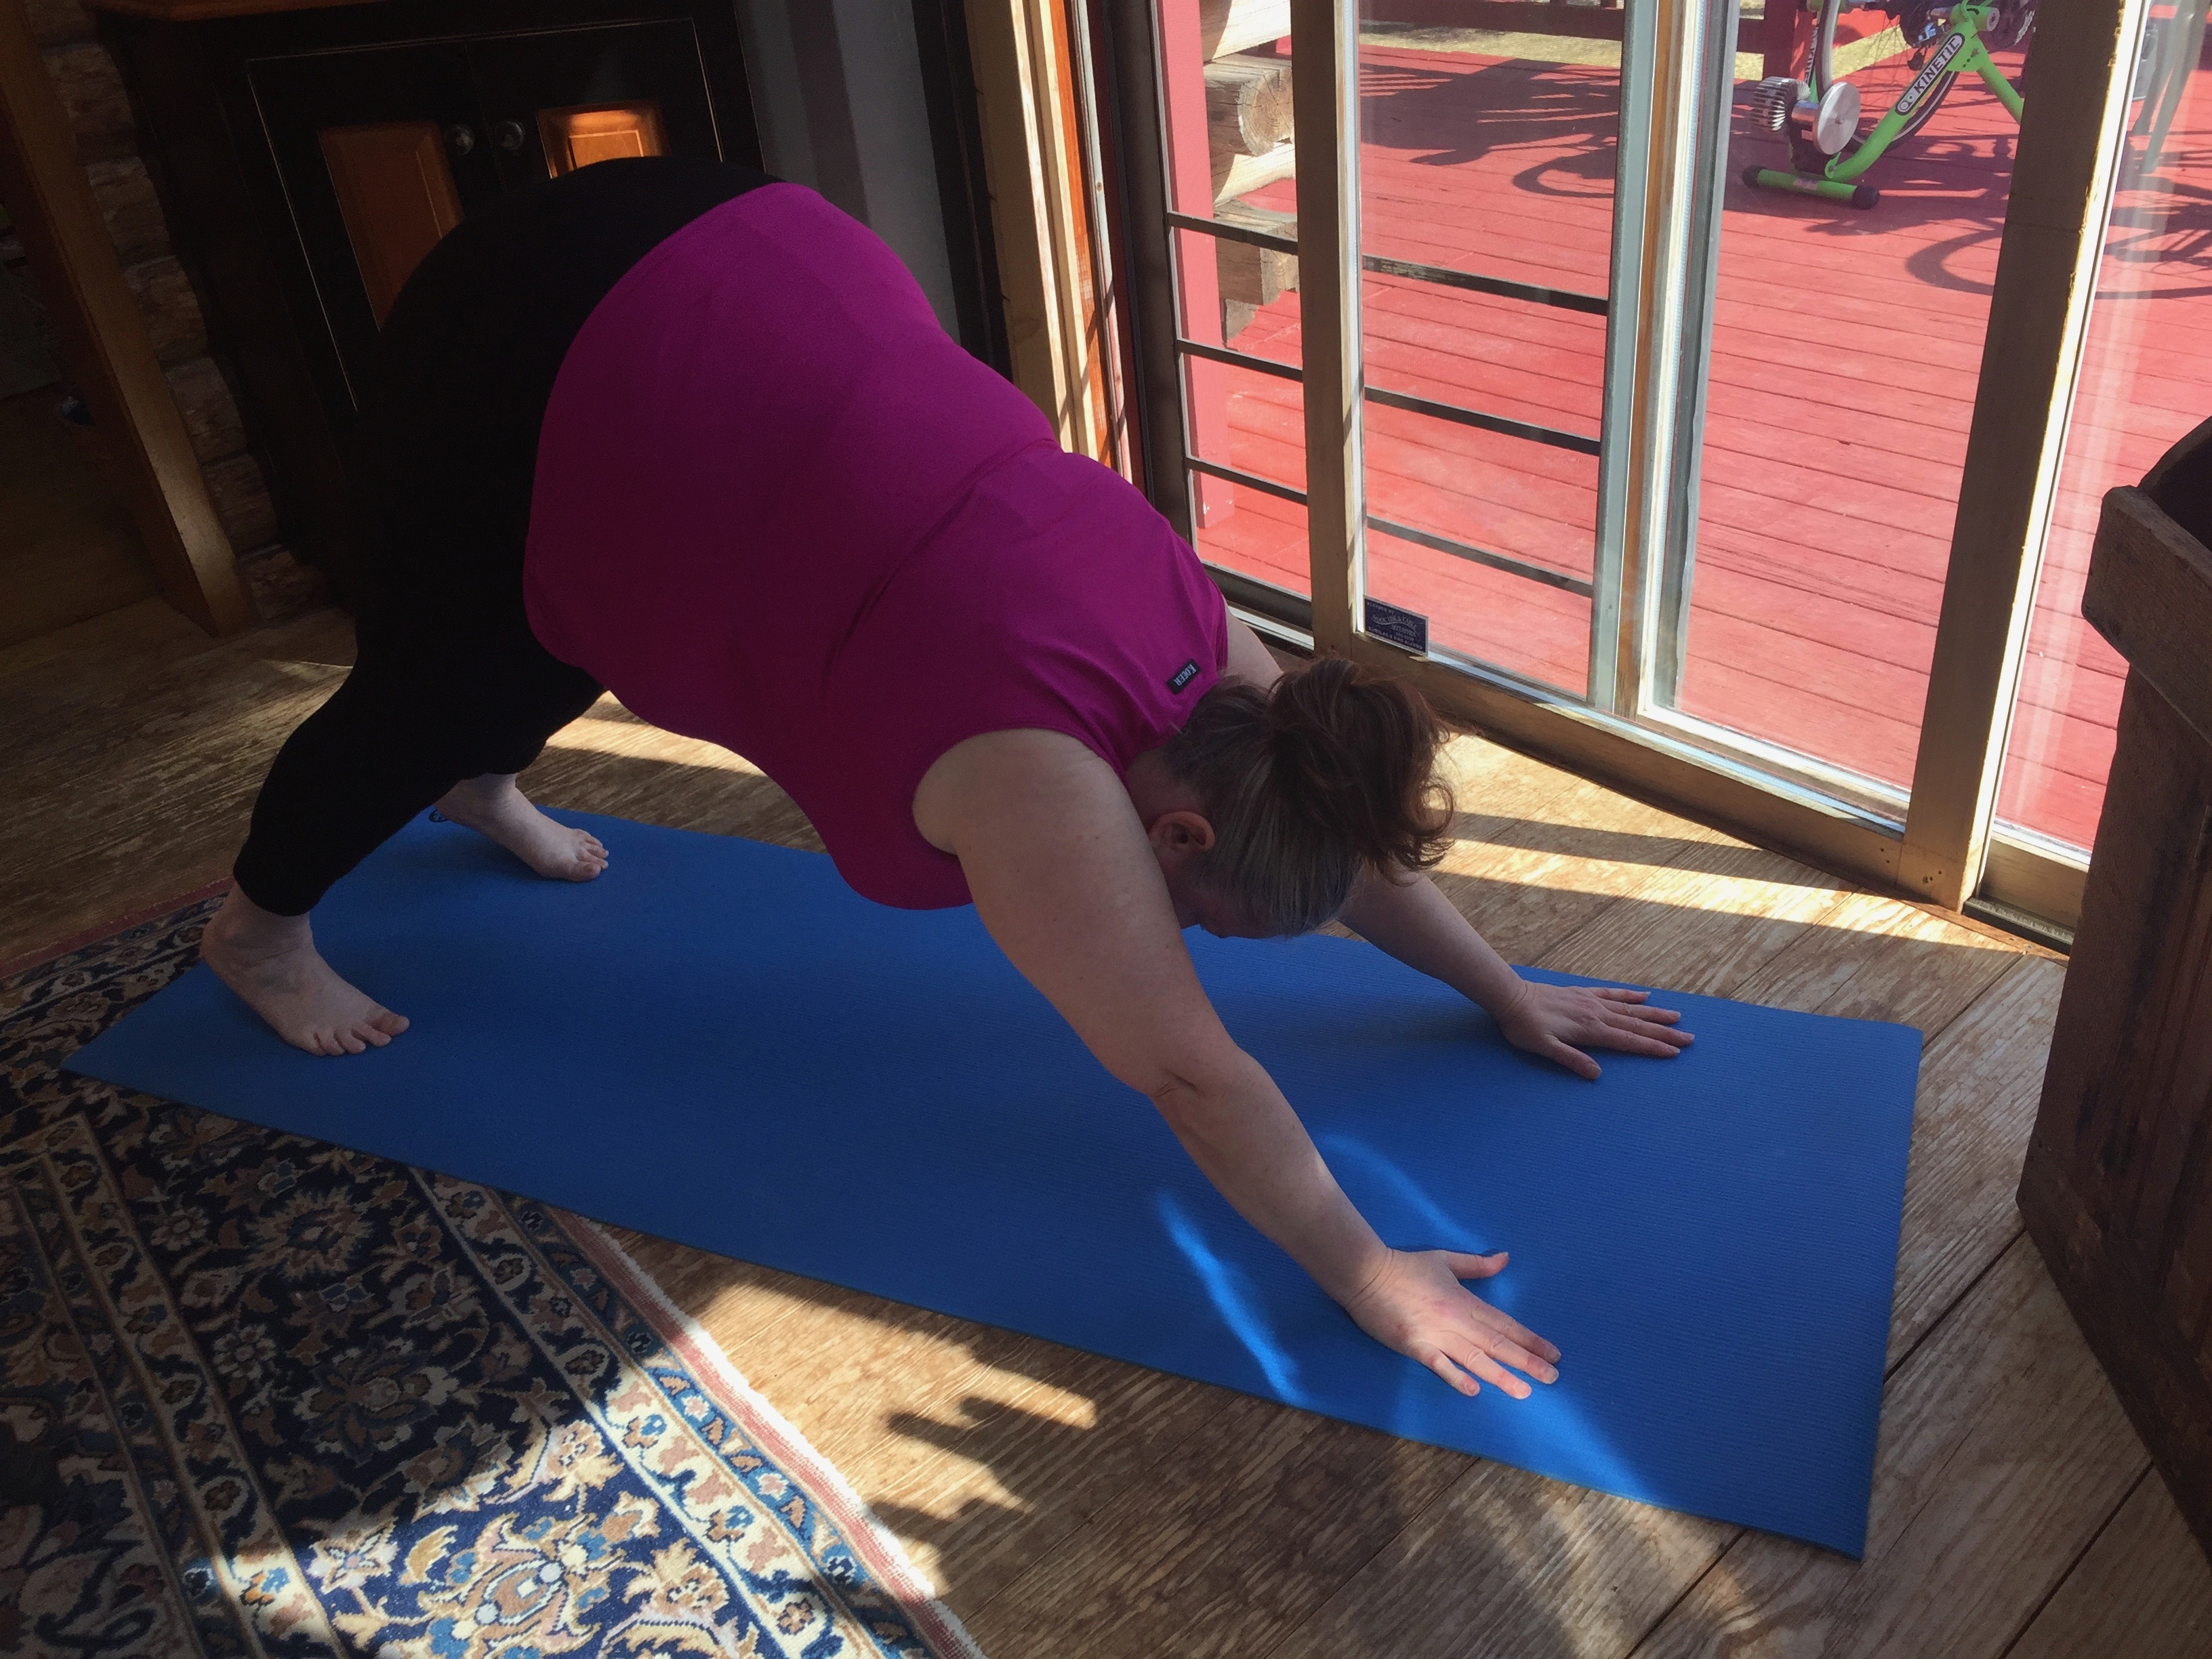 Me in downward facing dog on my mat inside the house.